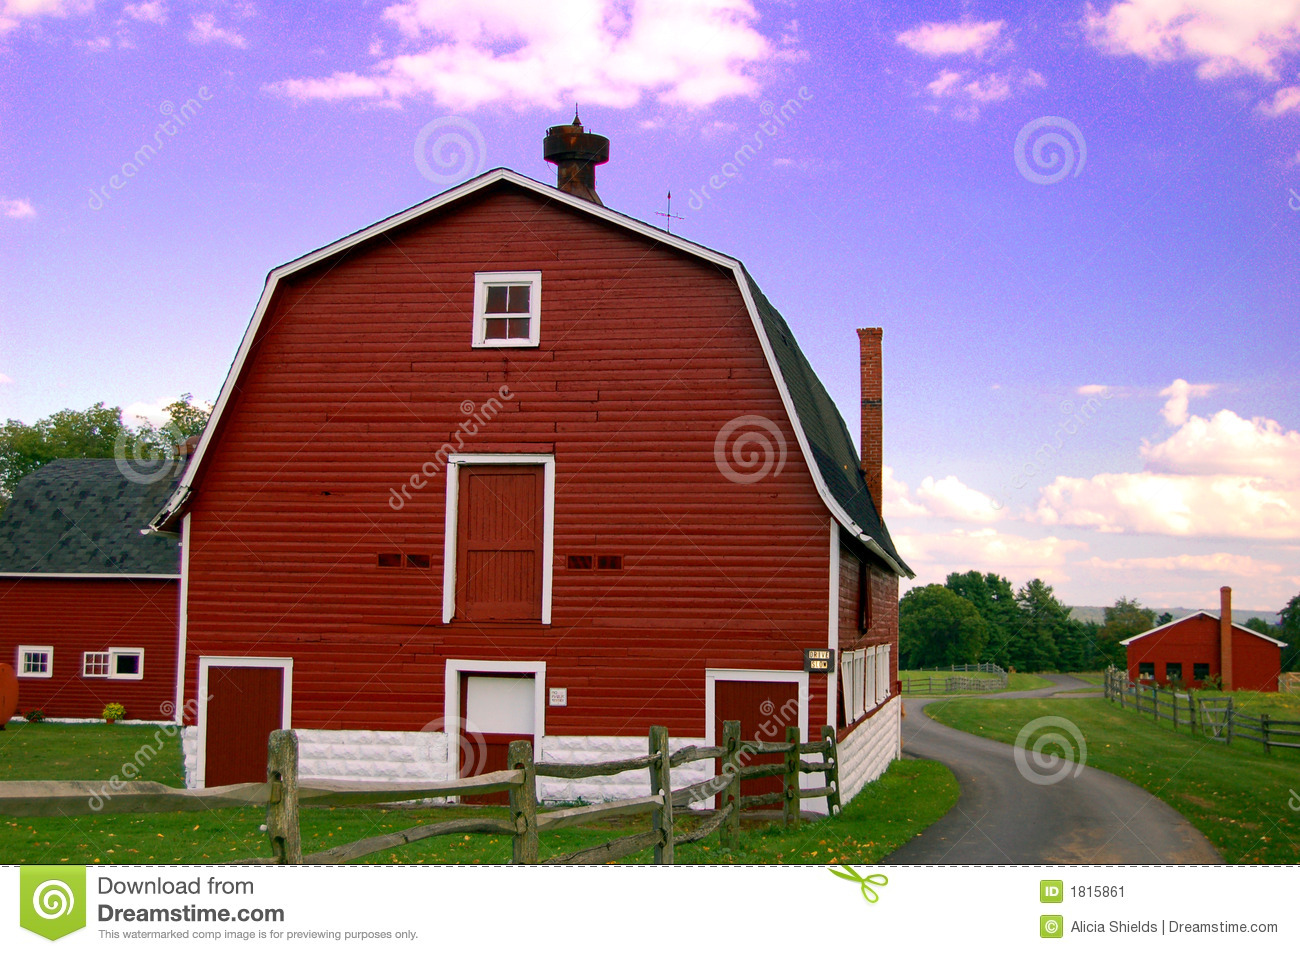 Stock Illustration Early Morning Rooster Sunrise Red Barn Farmhouse Image46311430 furthermore 183029172329137614 besides Why Heritage Breeds also Clip Art On Farm Library Farm Red Farmhouse Clipart Clip Art Free Library Top Image Top Red Farmhouse Clipart Farm Clip Art Free together with Refurbishment. on red barn farm